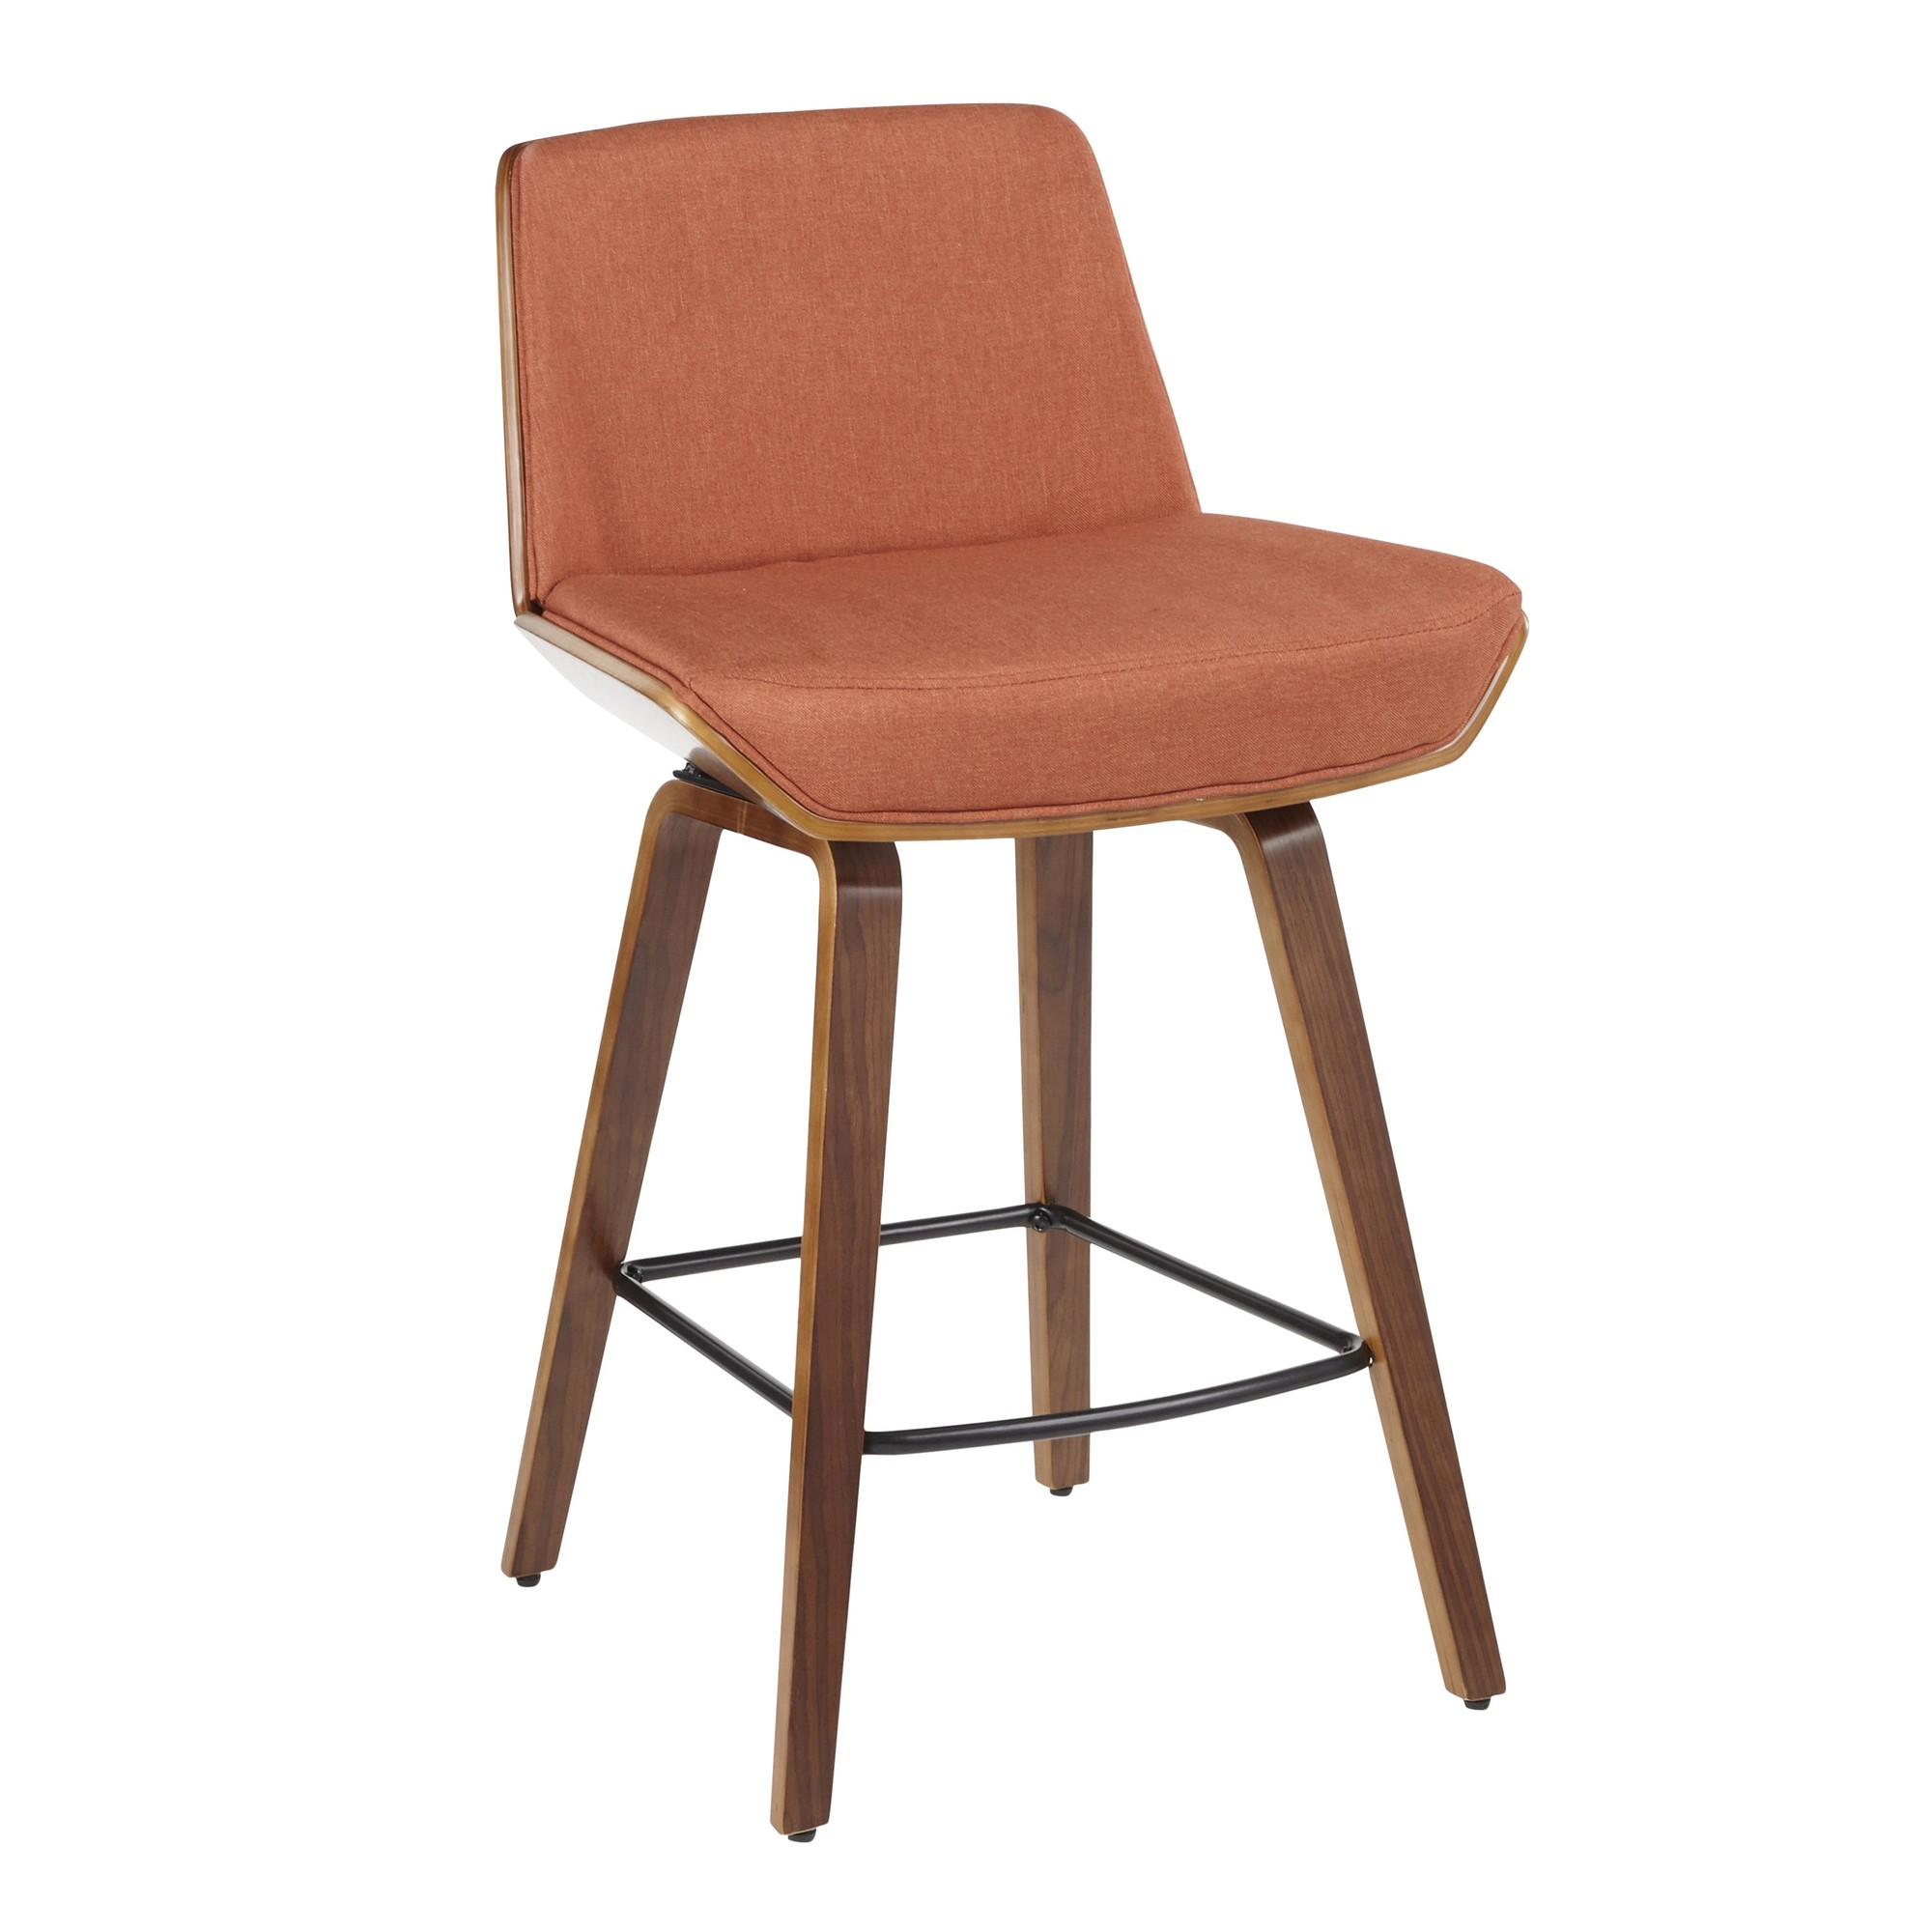 Walnut | Fabric | Orange | Modern | Stool | Wood